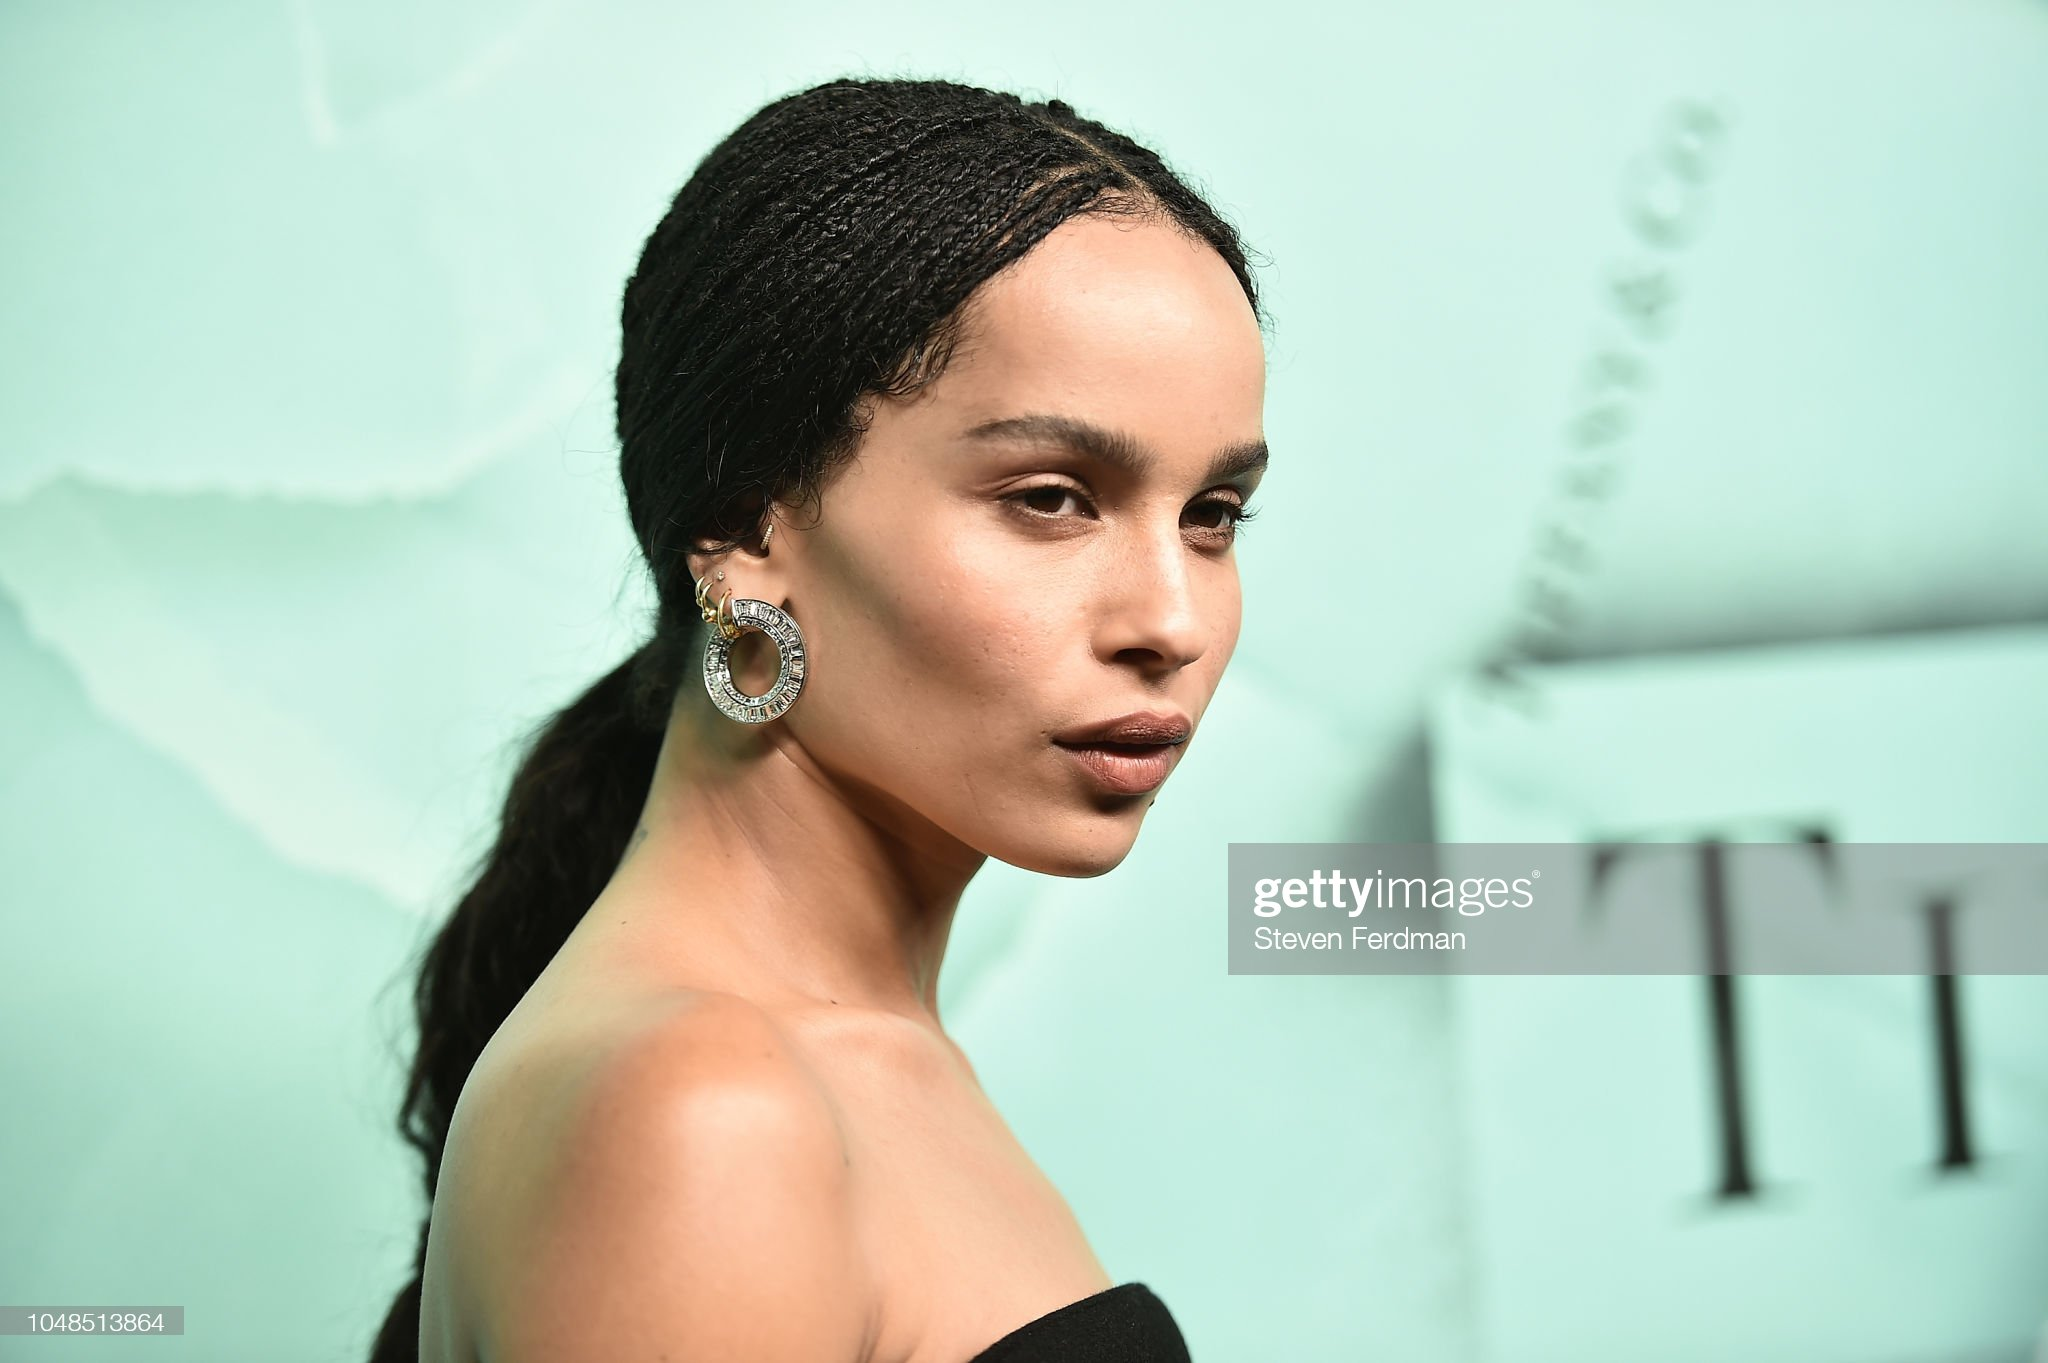 What are Zoë Kravitz's beauty secrets?